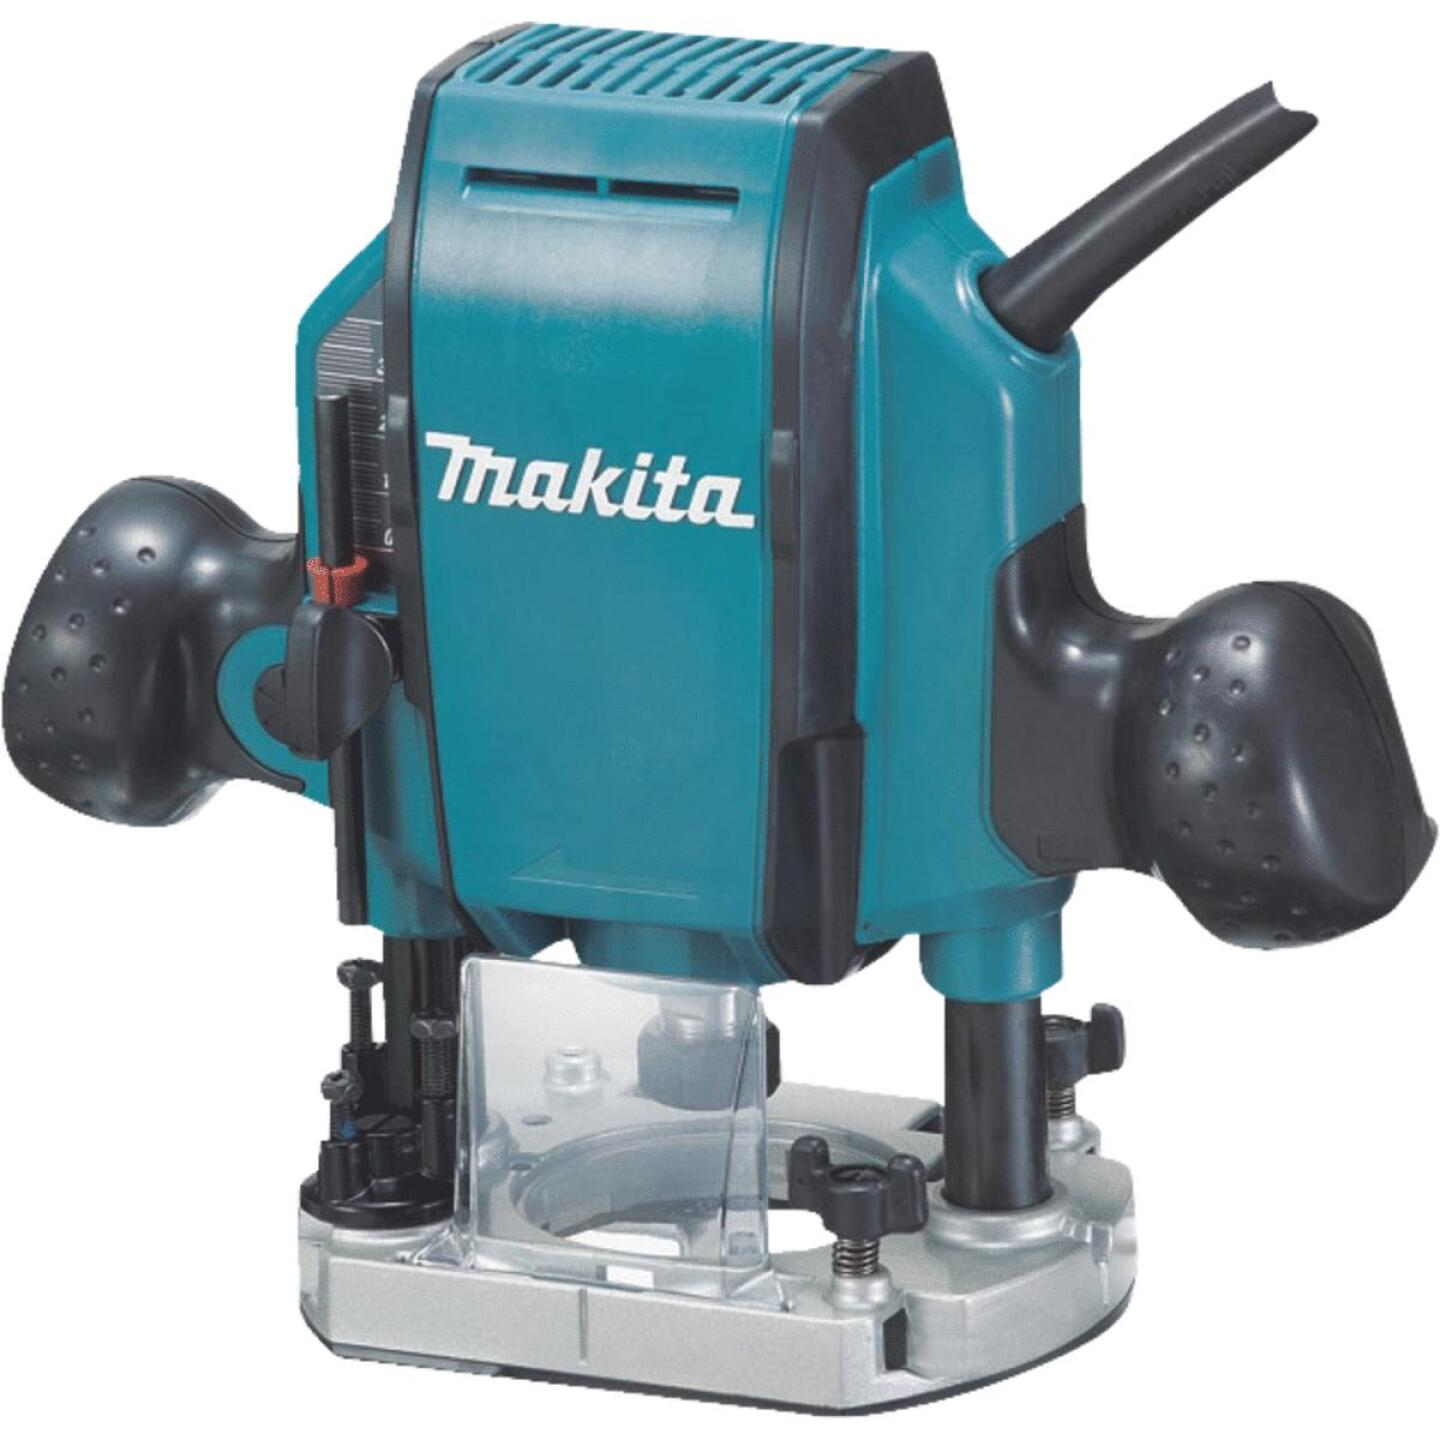 Makita 1-1/4 HP/8A 27,000 rpm Plunge Router Image 1